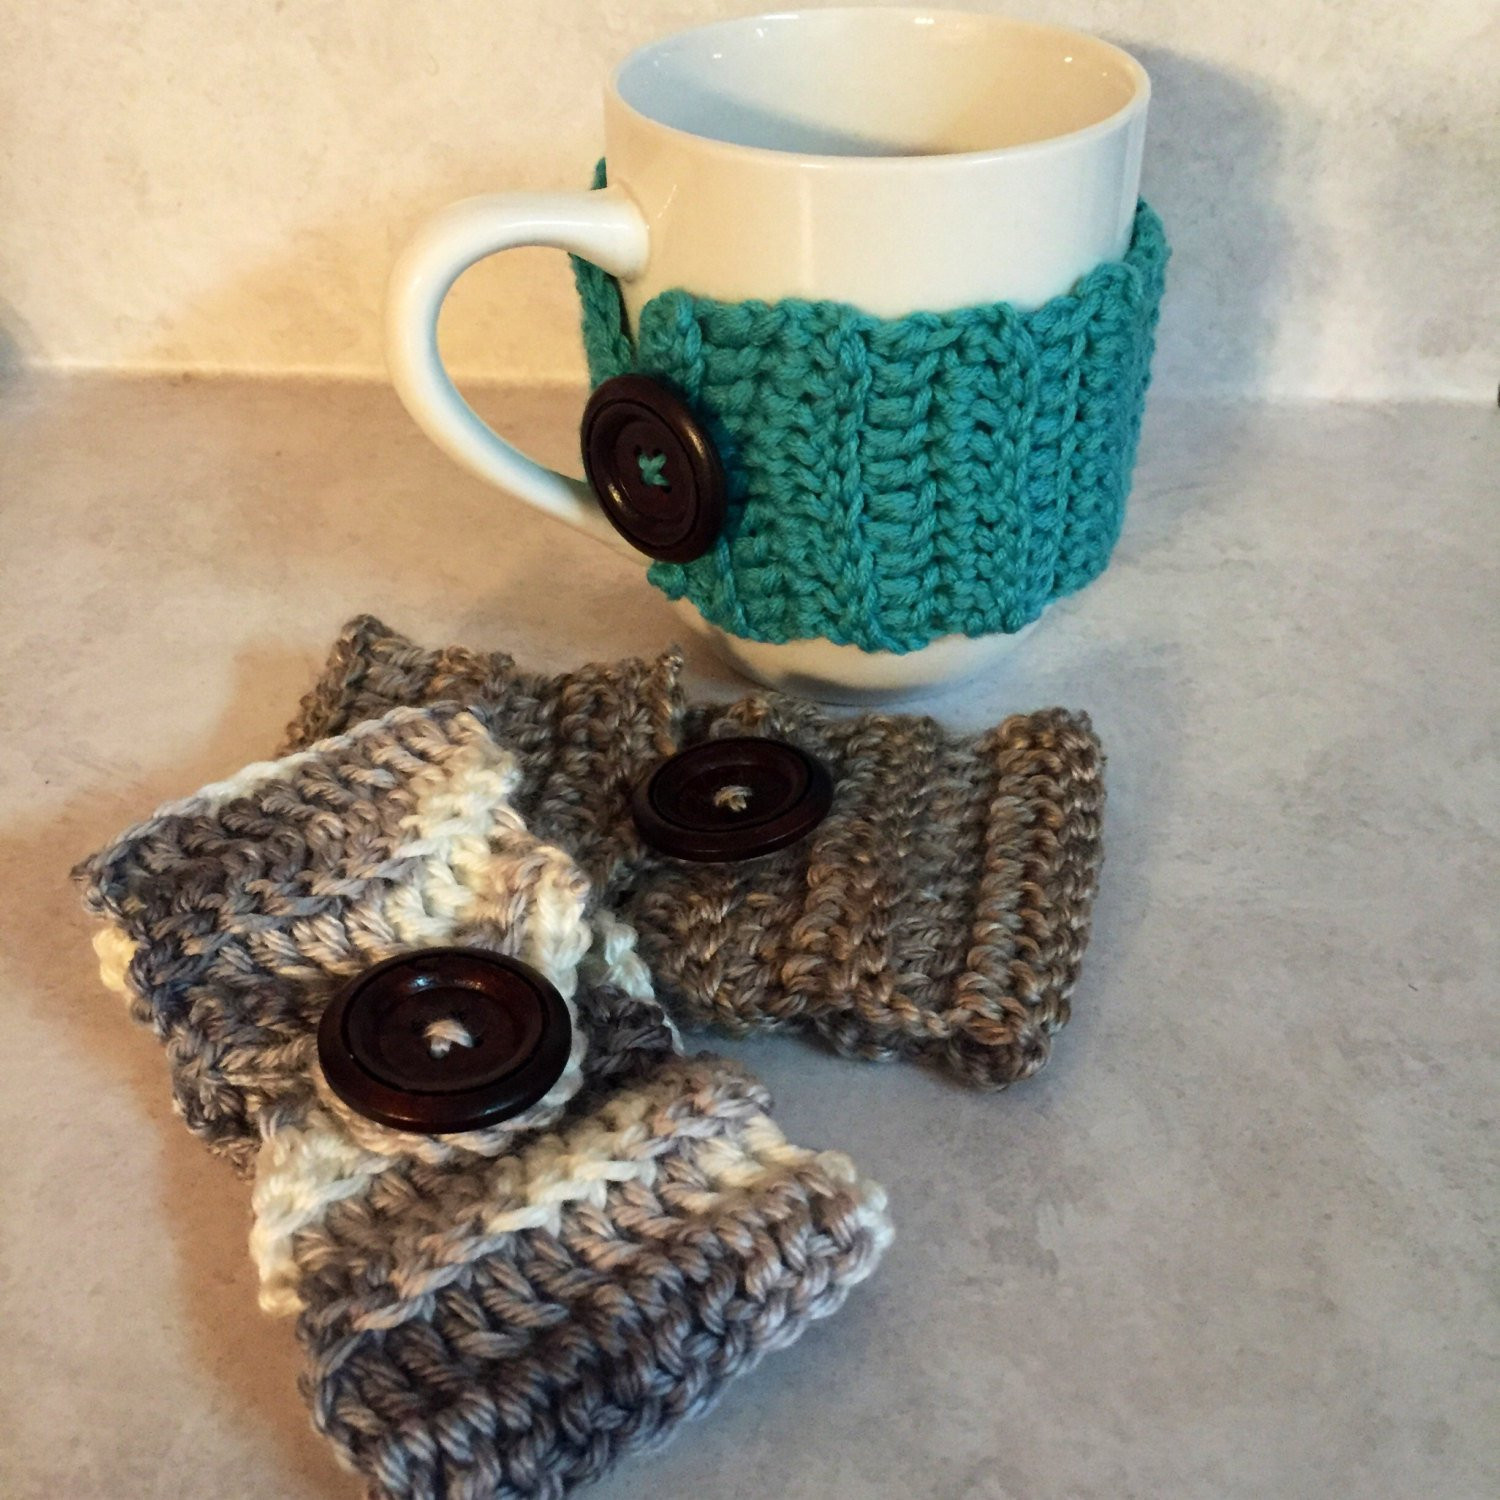 Crochet Coffee Cup Cozy New Crochet Tea Cozy Coffee Cup Sleeve Coffee Sleeve Mug Cozy Of Crochet Coffee Cup Cozy Awesome Textured Coffee Mug Cozy Crochet Pattern